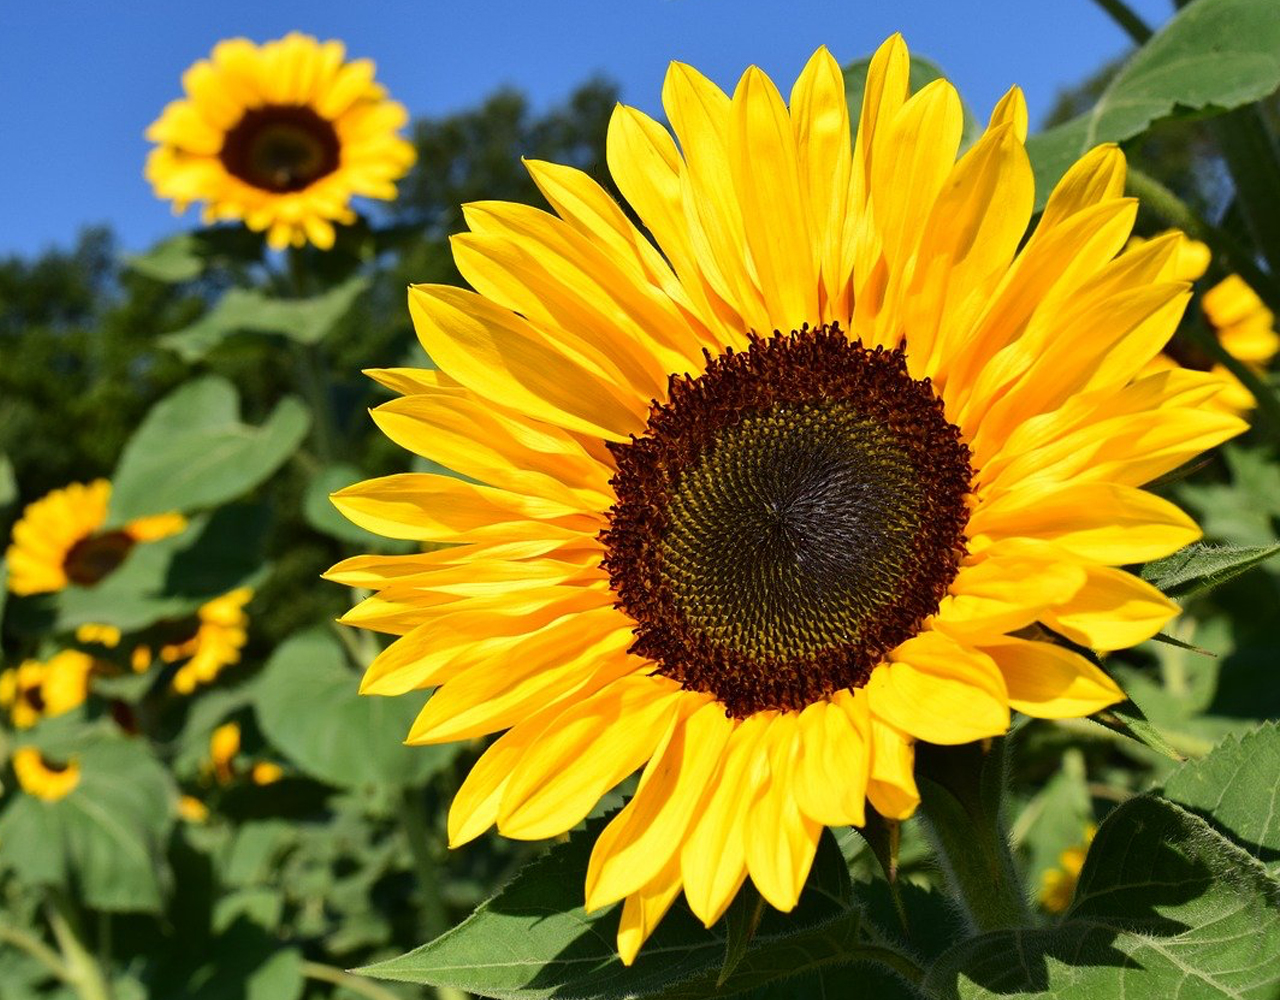 Sunflowers - Your garden in April